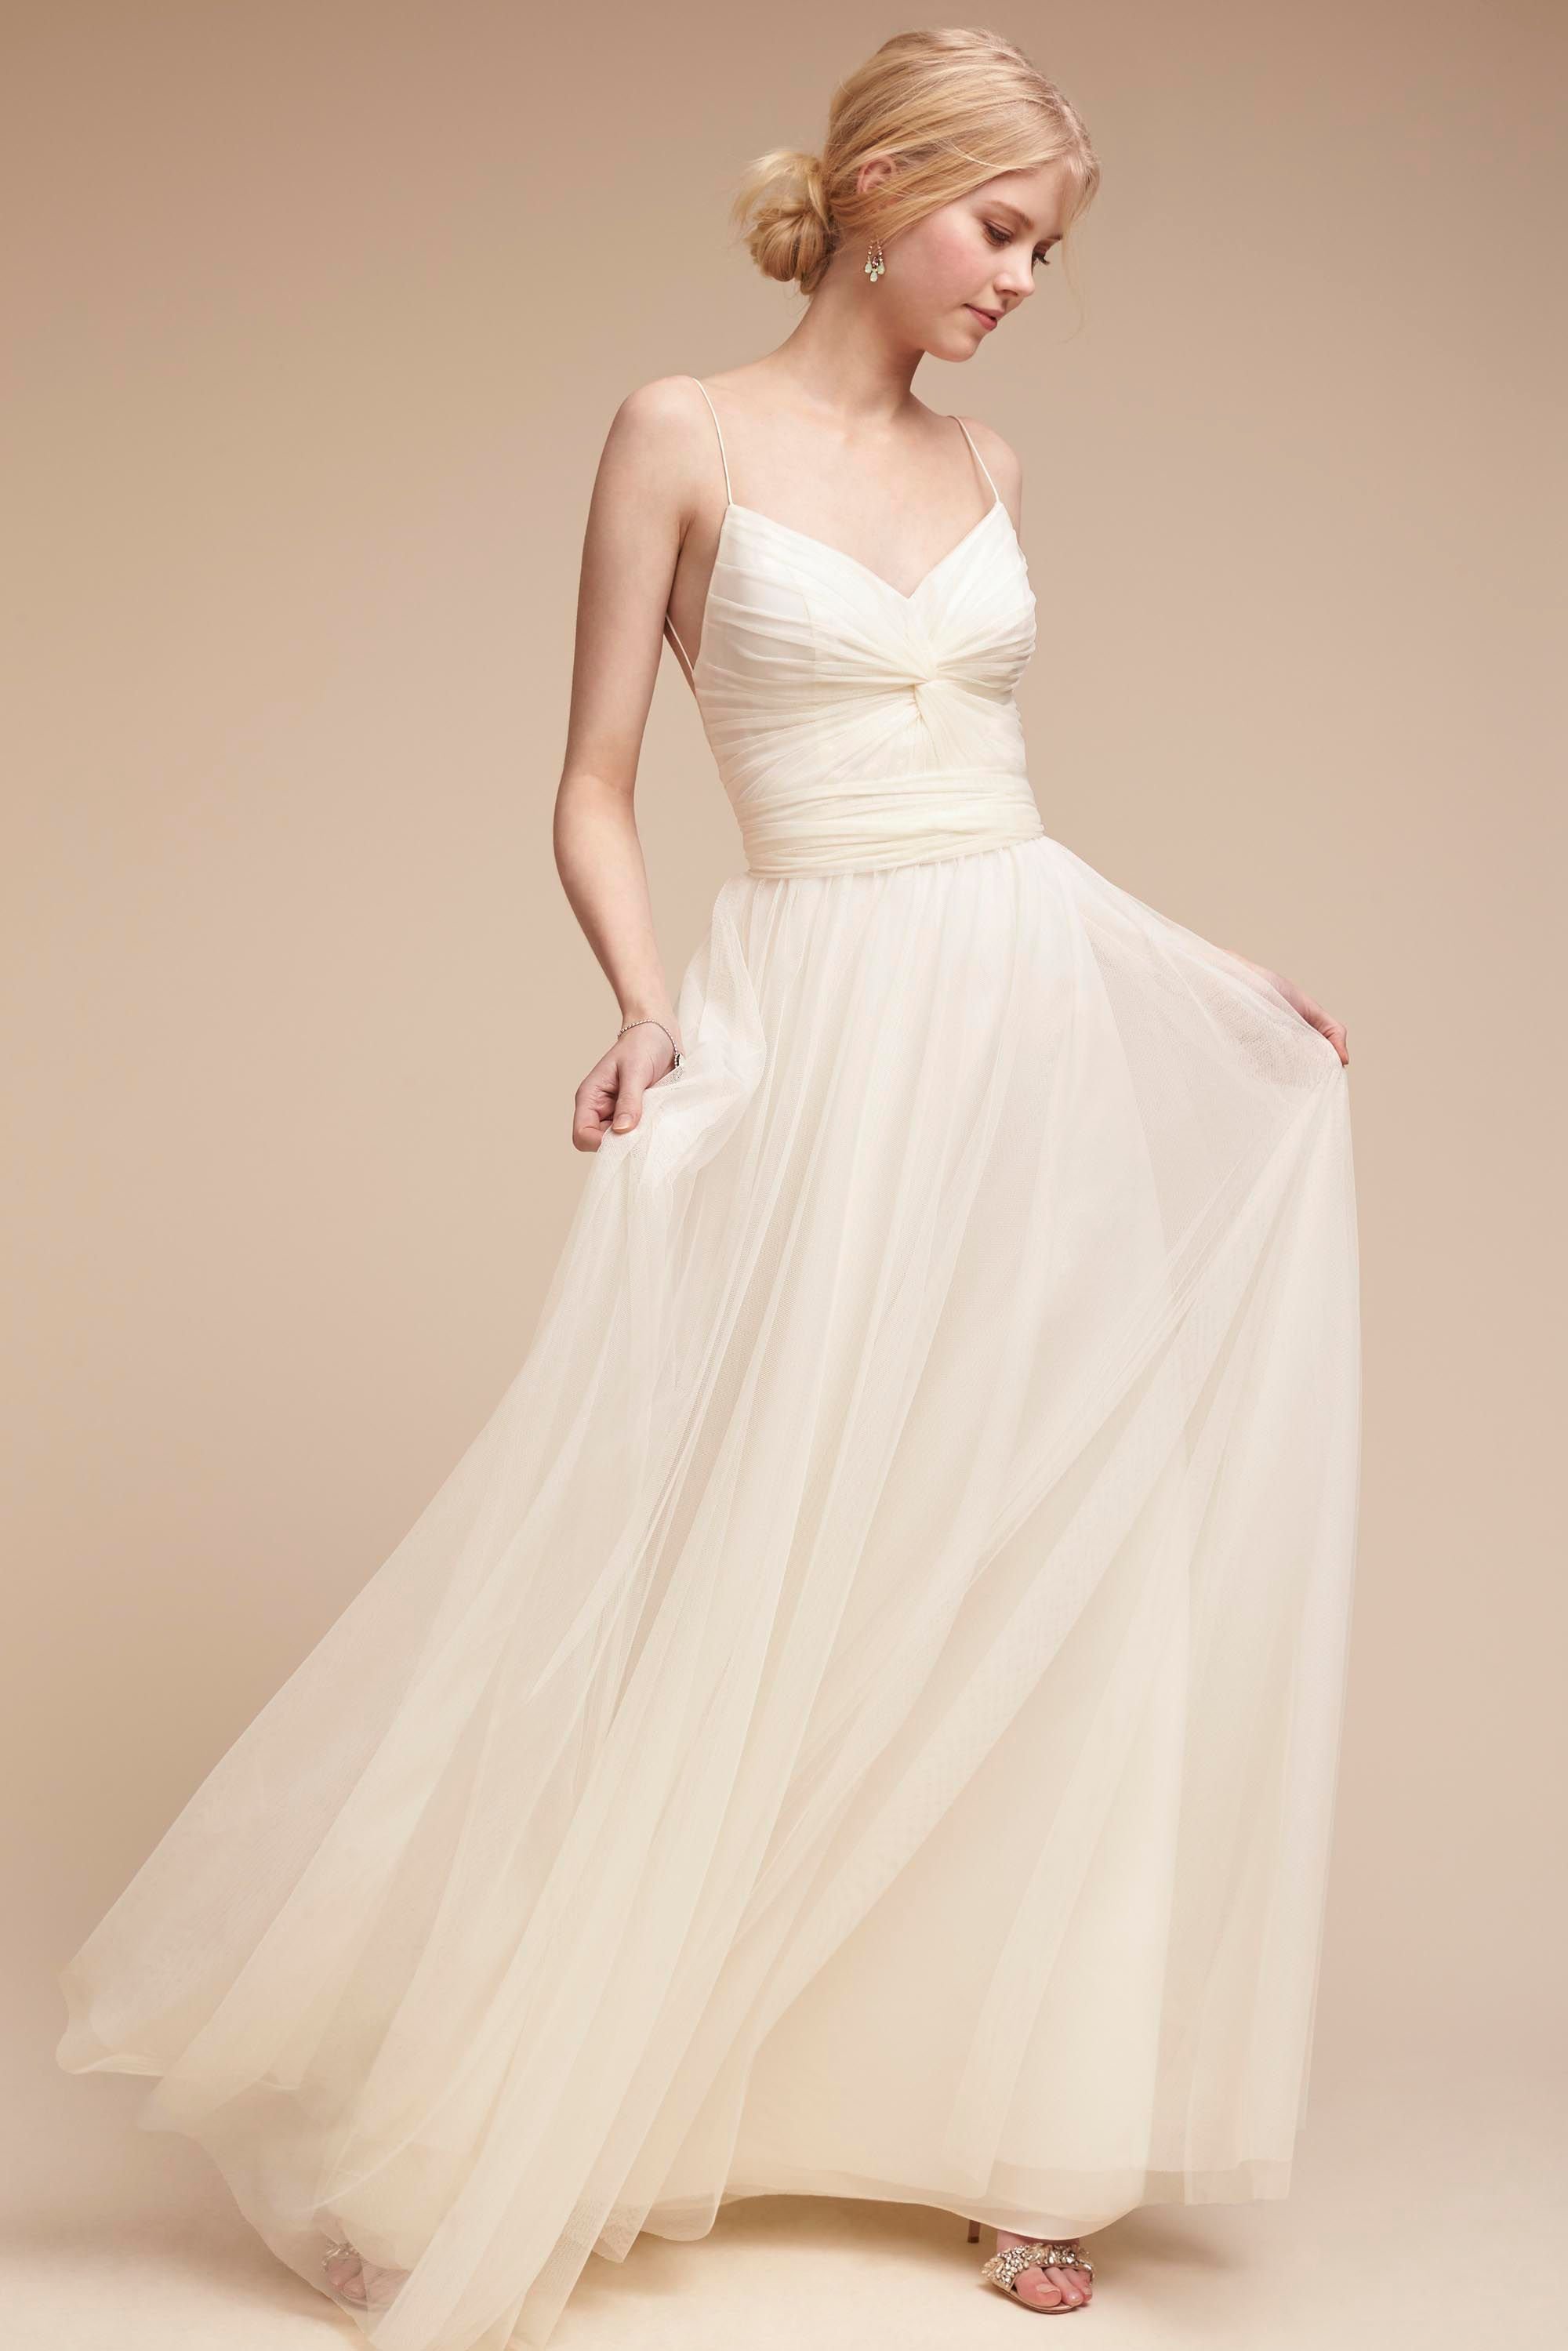 Little white wedding dress  BHLDN Tinsley Dress in Bride Wedding Dresses  BHLDN  Merry it